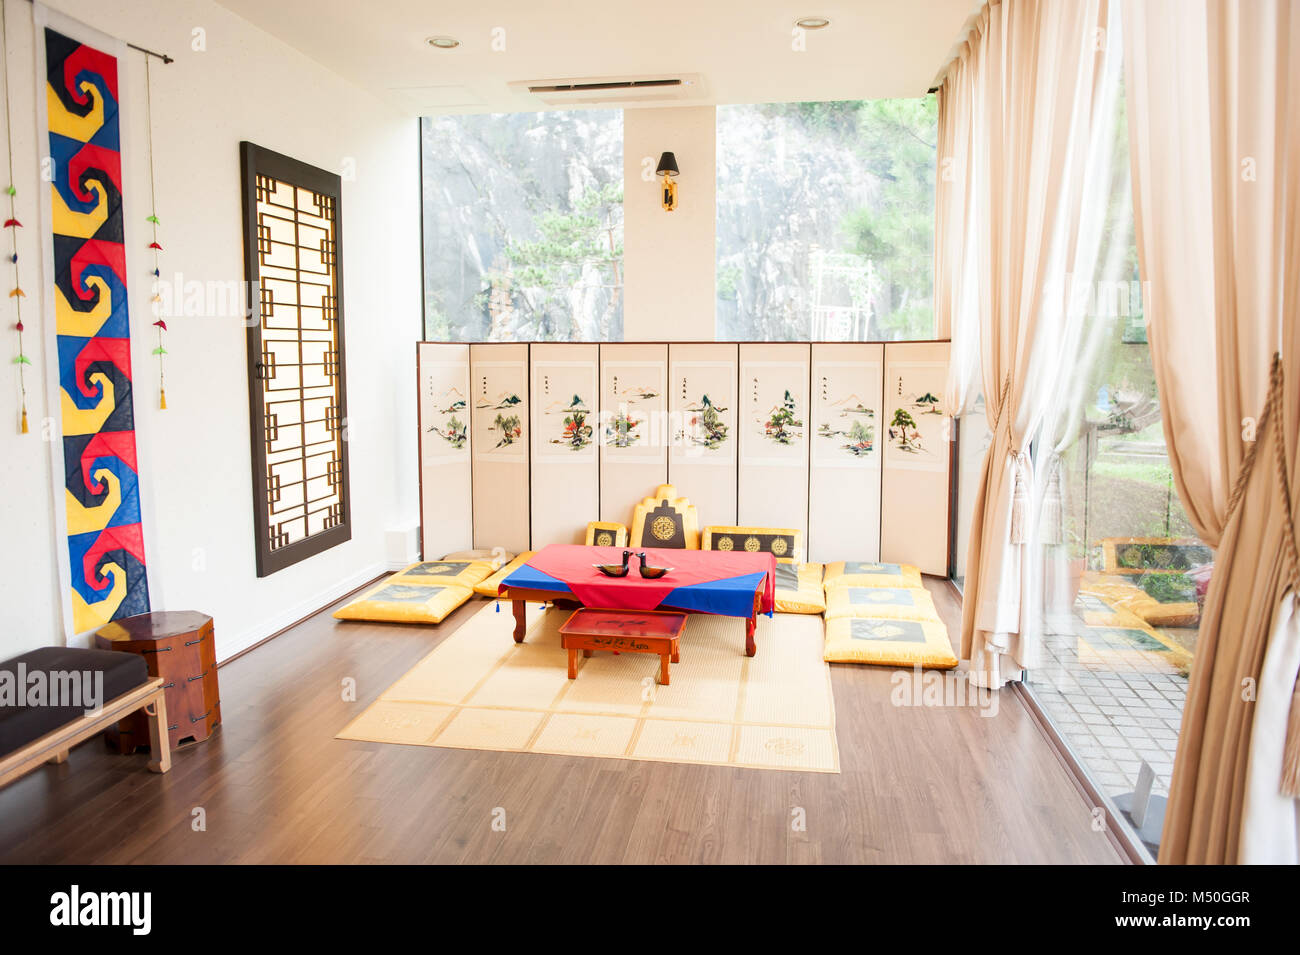 Traditional Korean Home Interior High Resolution Stock Photography And Images Alamy